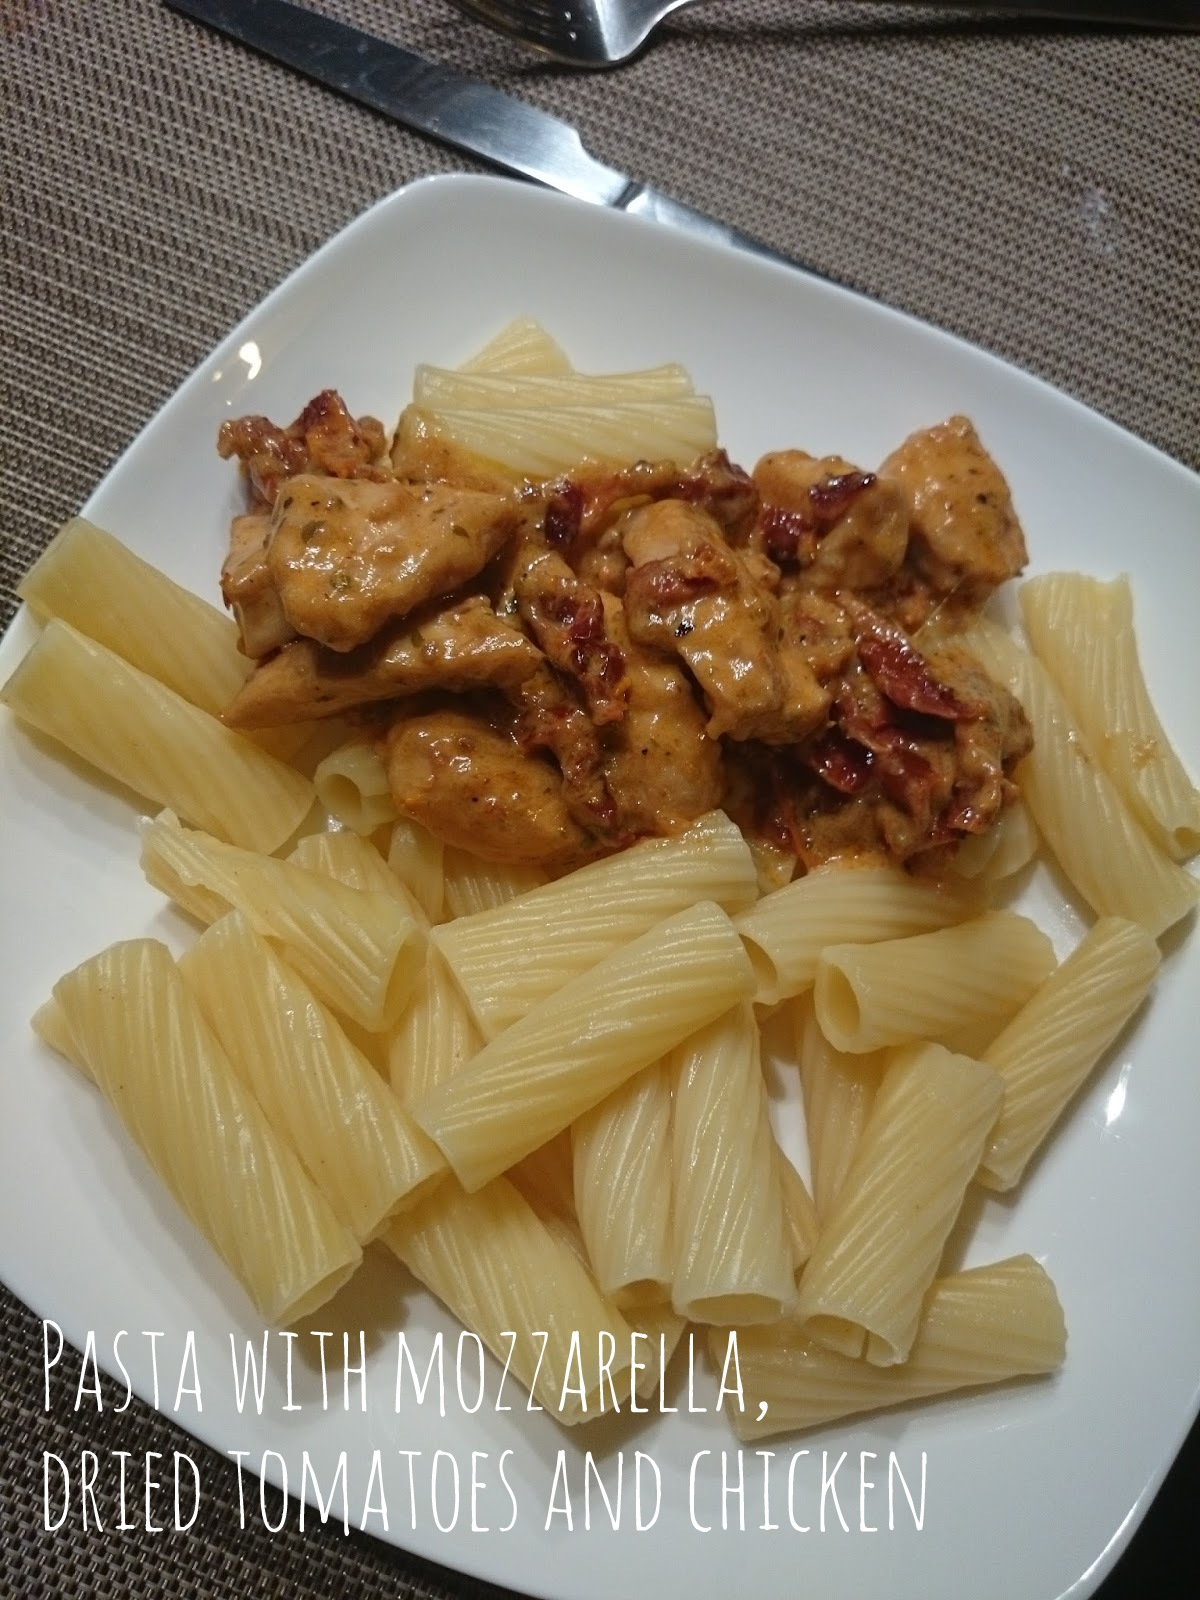 Pasta with mozzarella, dried tomatoes and chicken